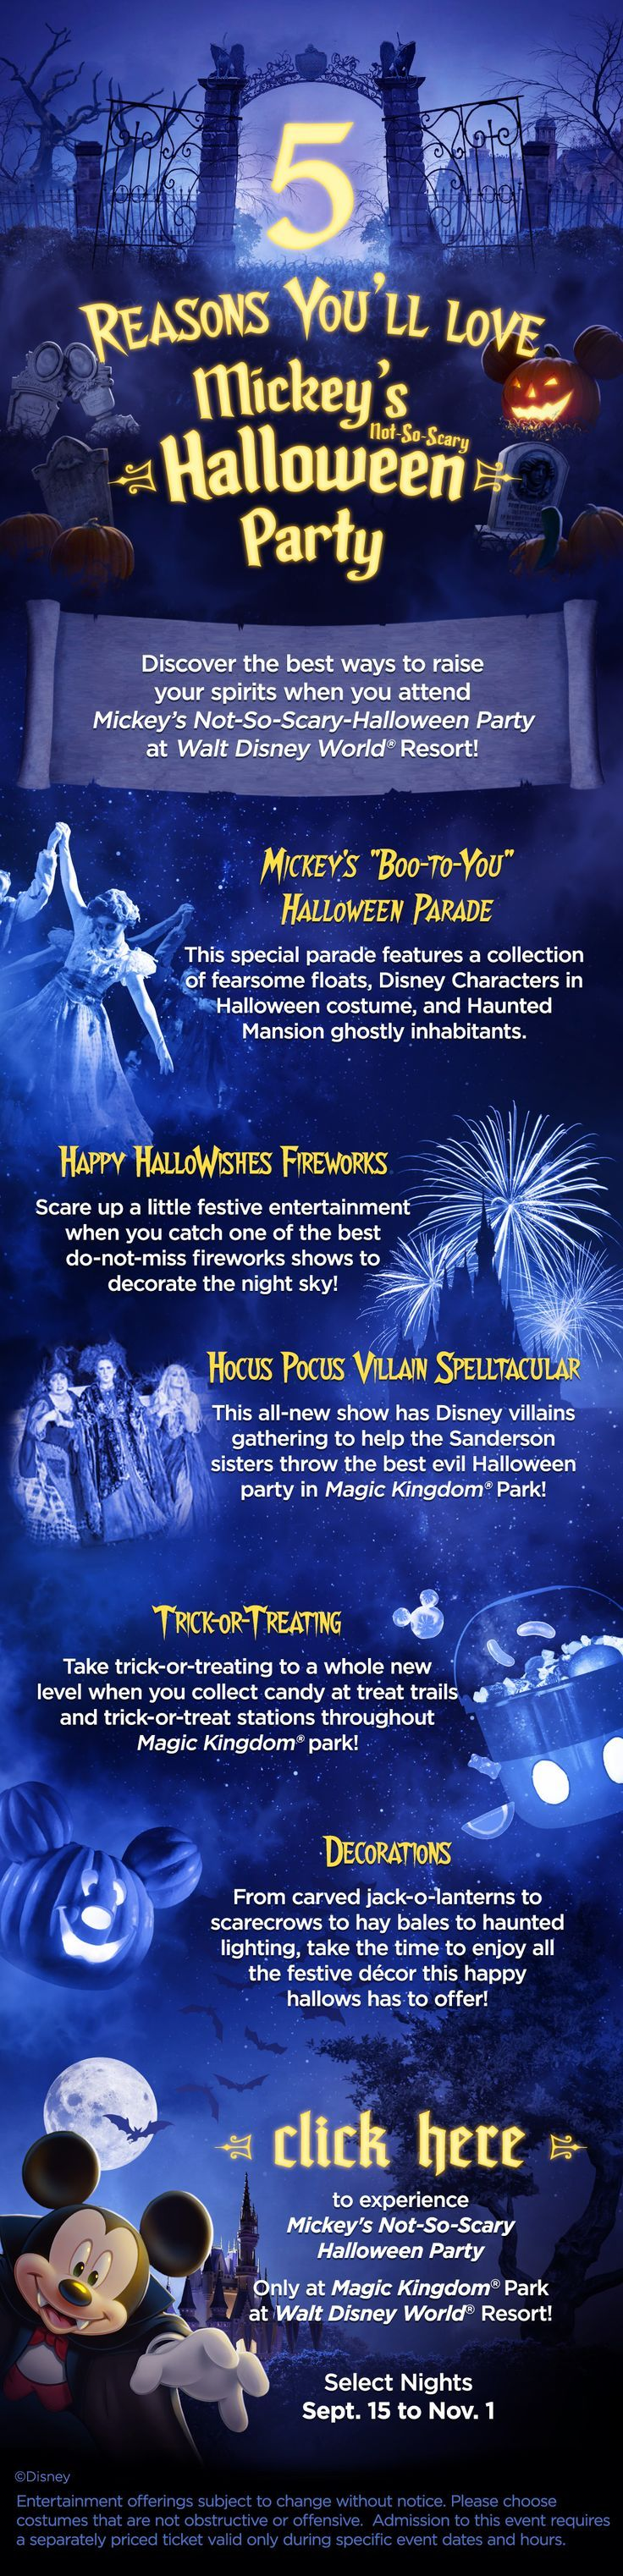 5 reasons youll love mickeys not so scary halloween party at magic